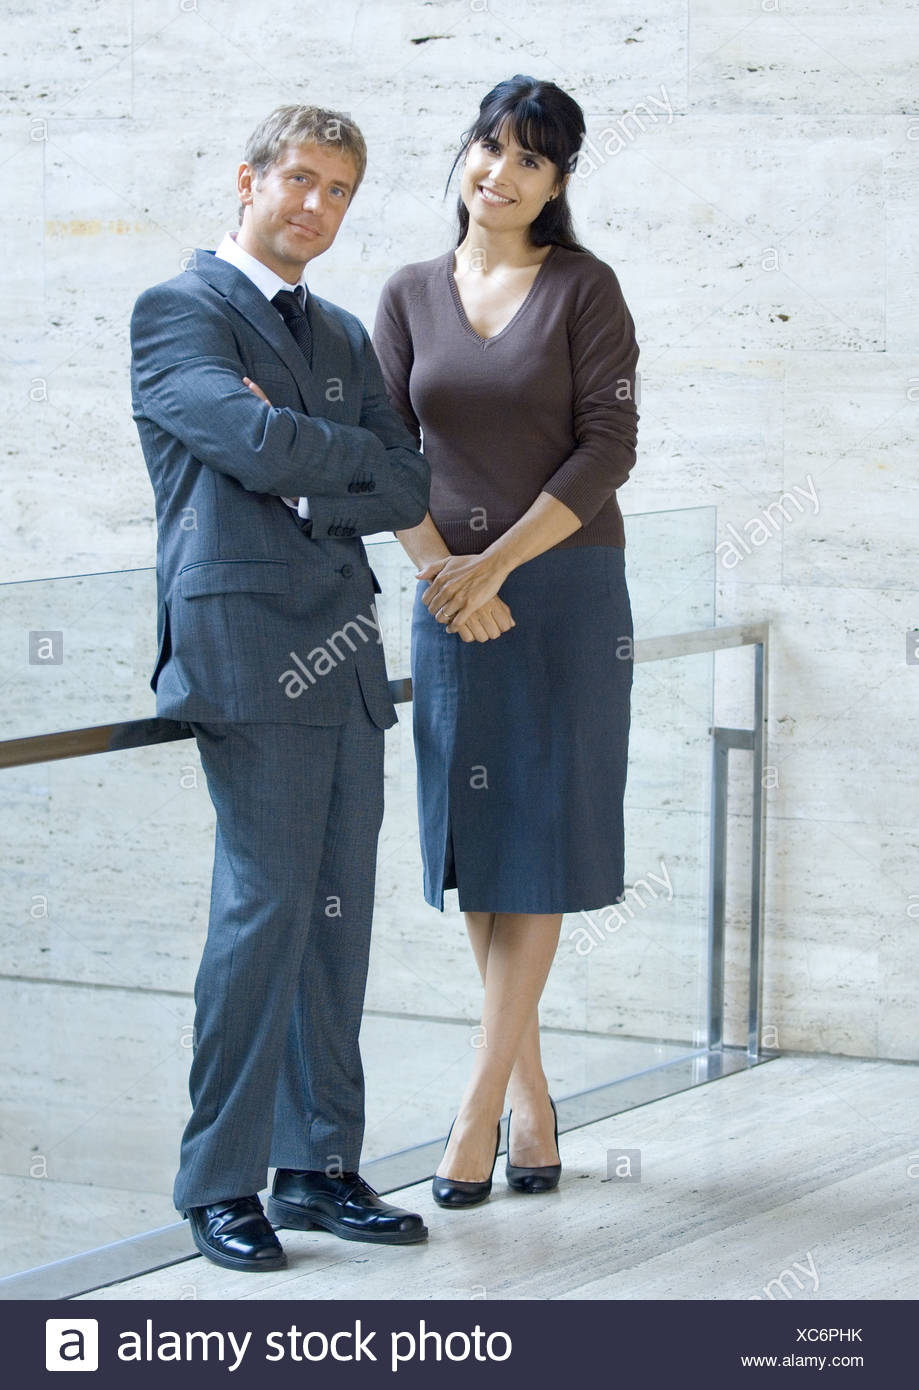 Businessman and woman, standing and smiling, portrait - Stock Image